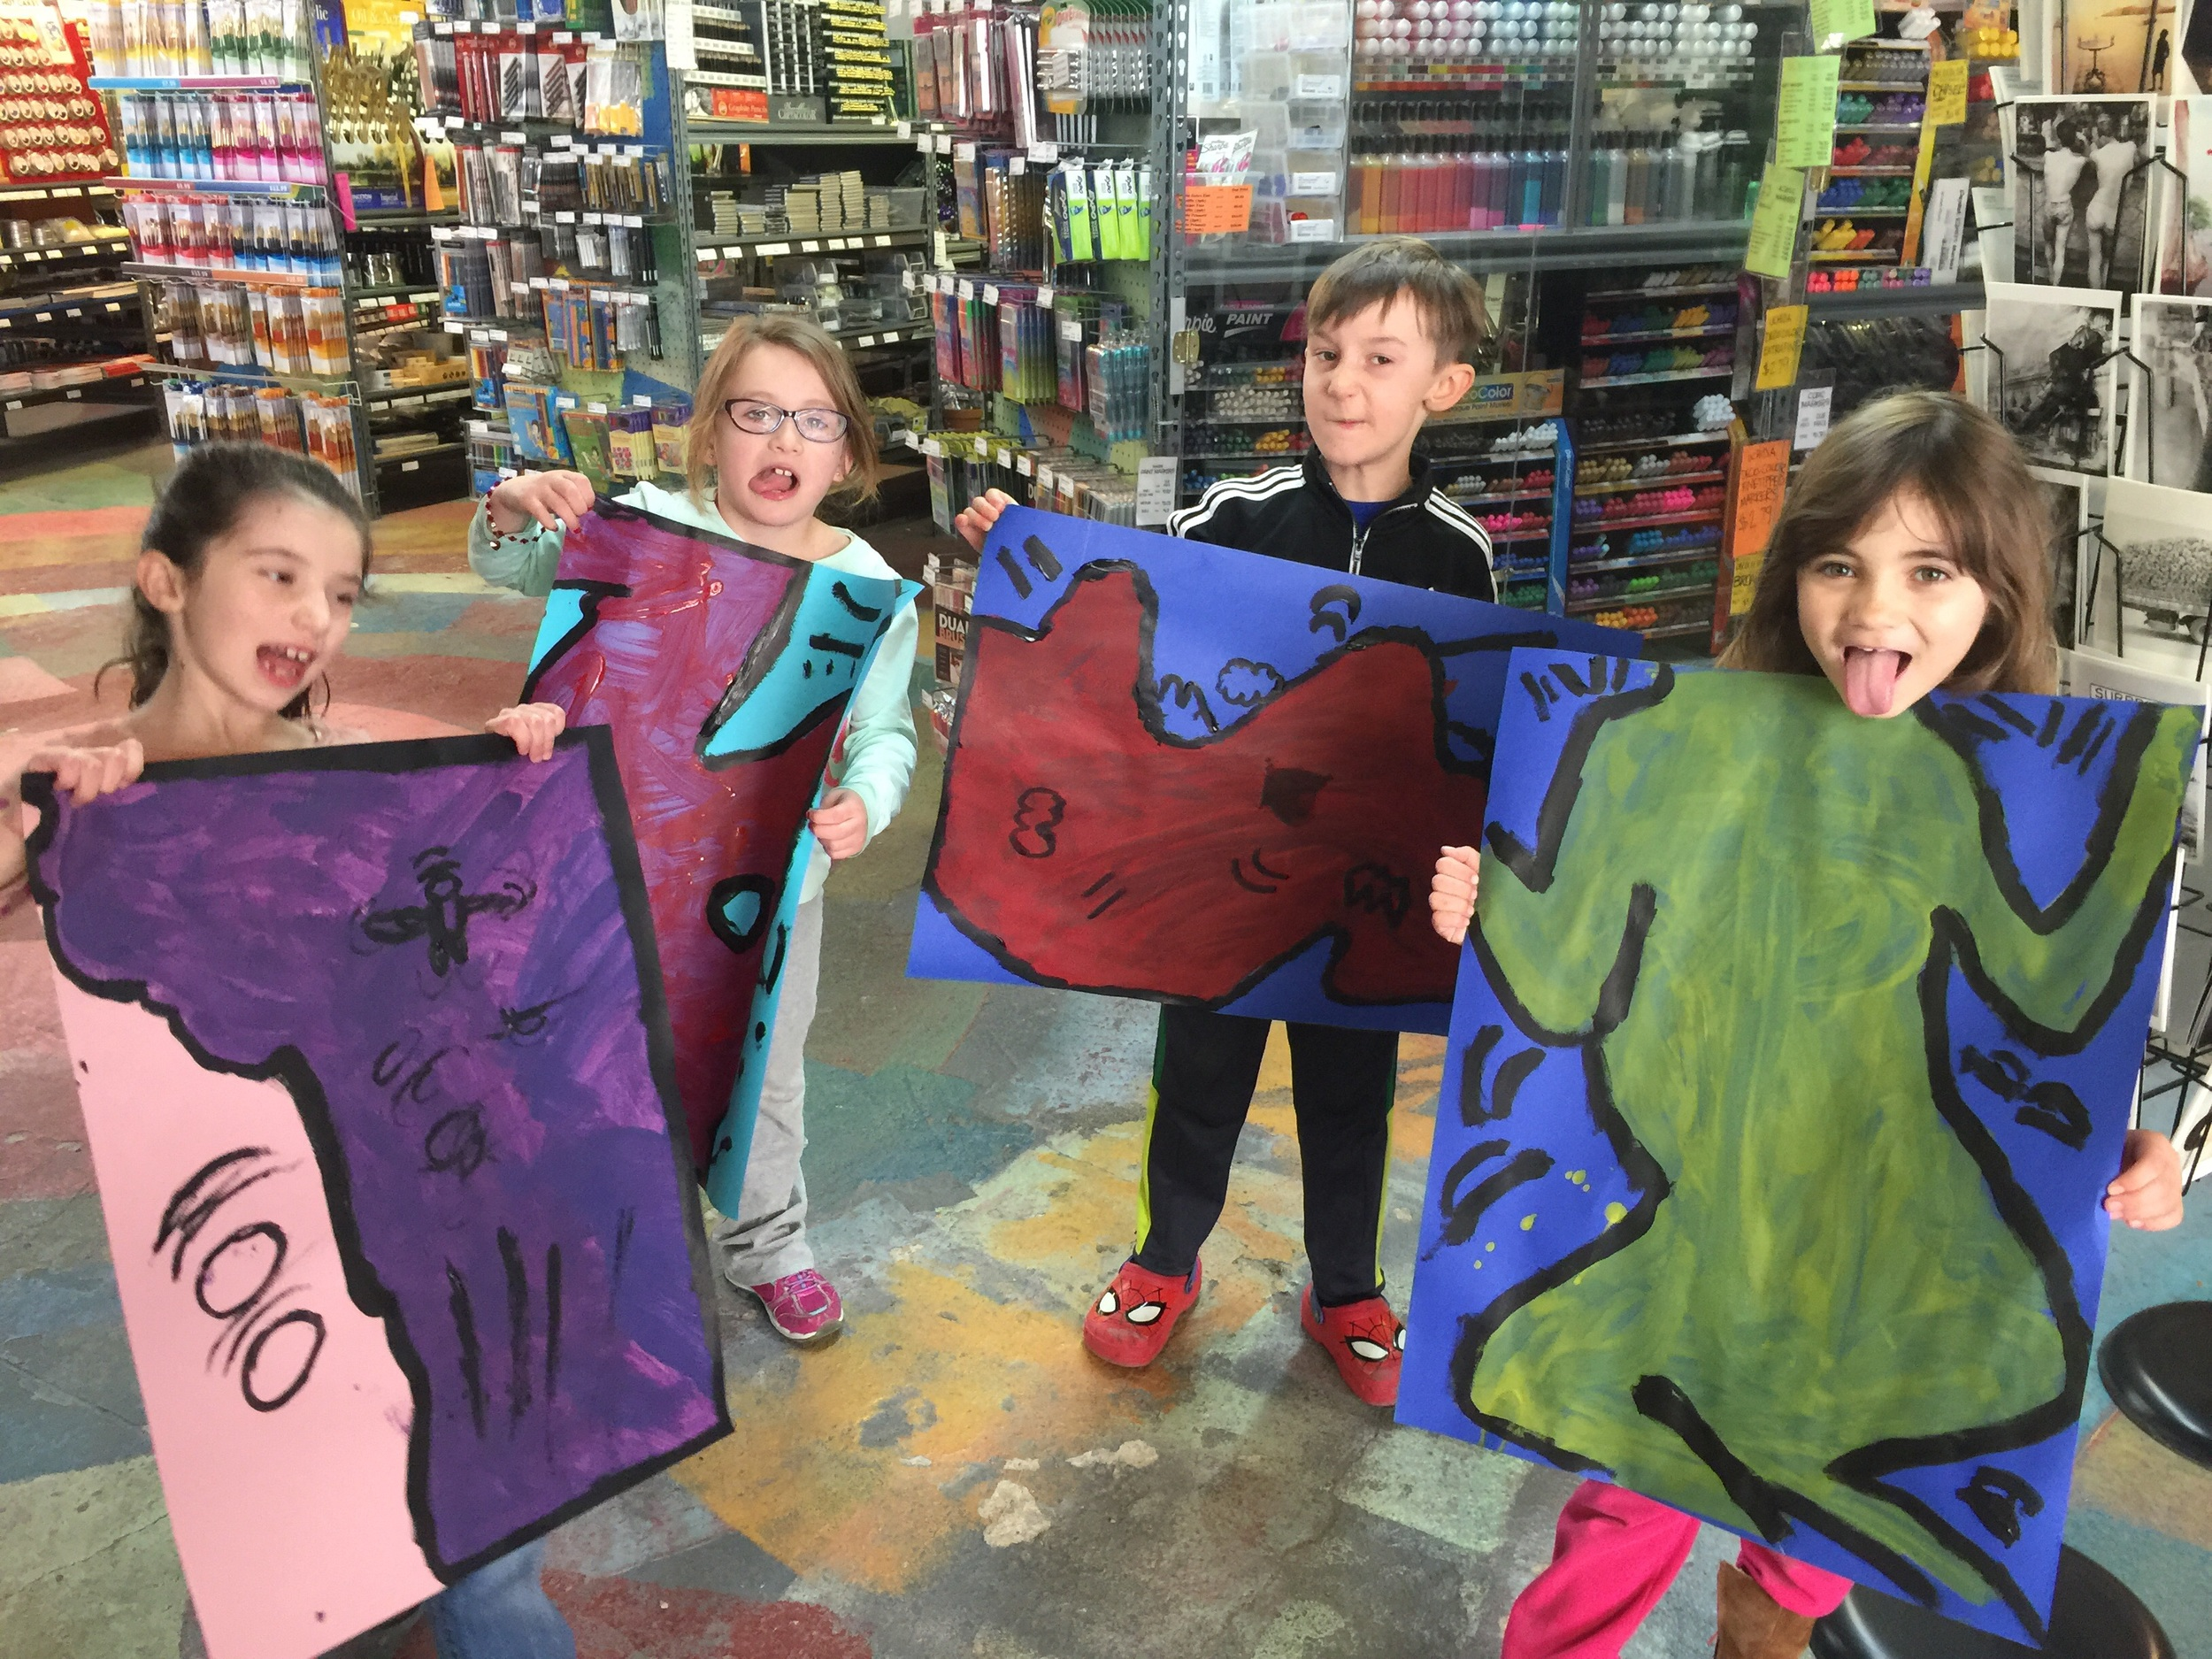 Meet Nora, Fiona, Niall and Mary and their interpretation of Keih Haring's Subway chalk drawings! 😜 lol.